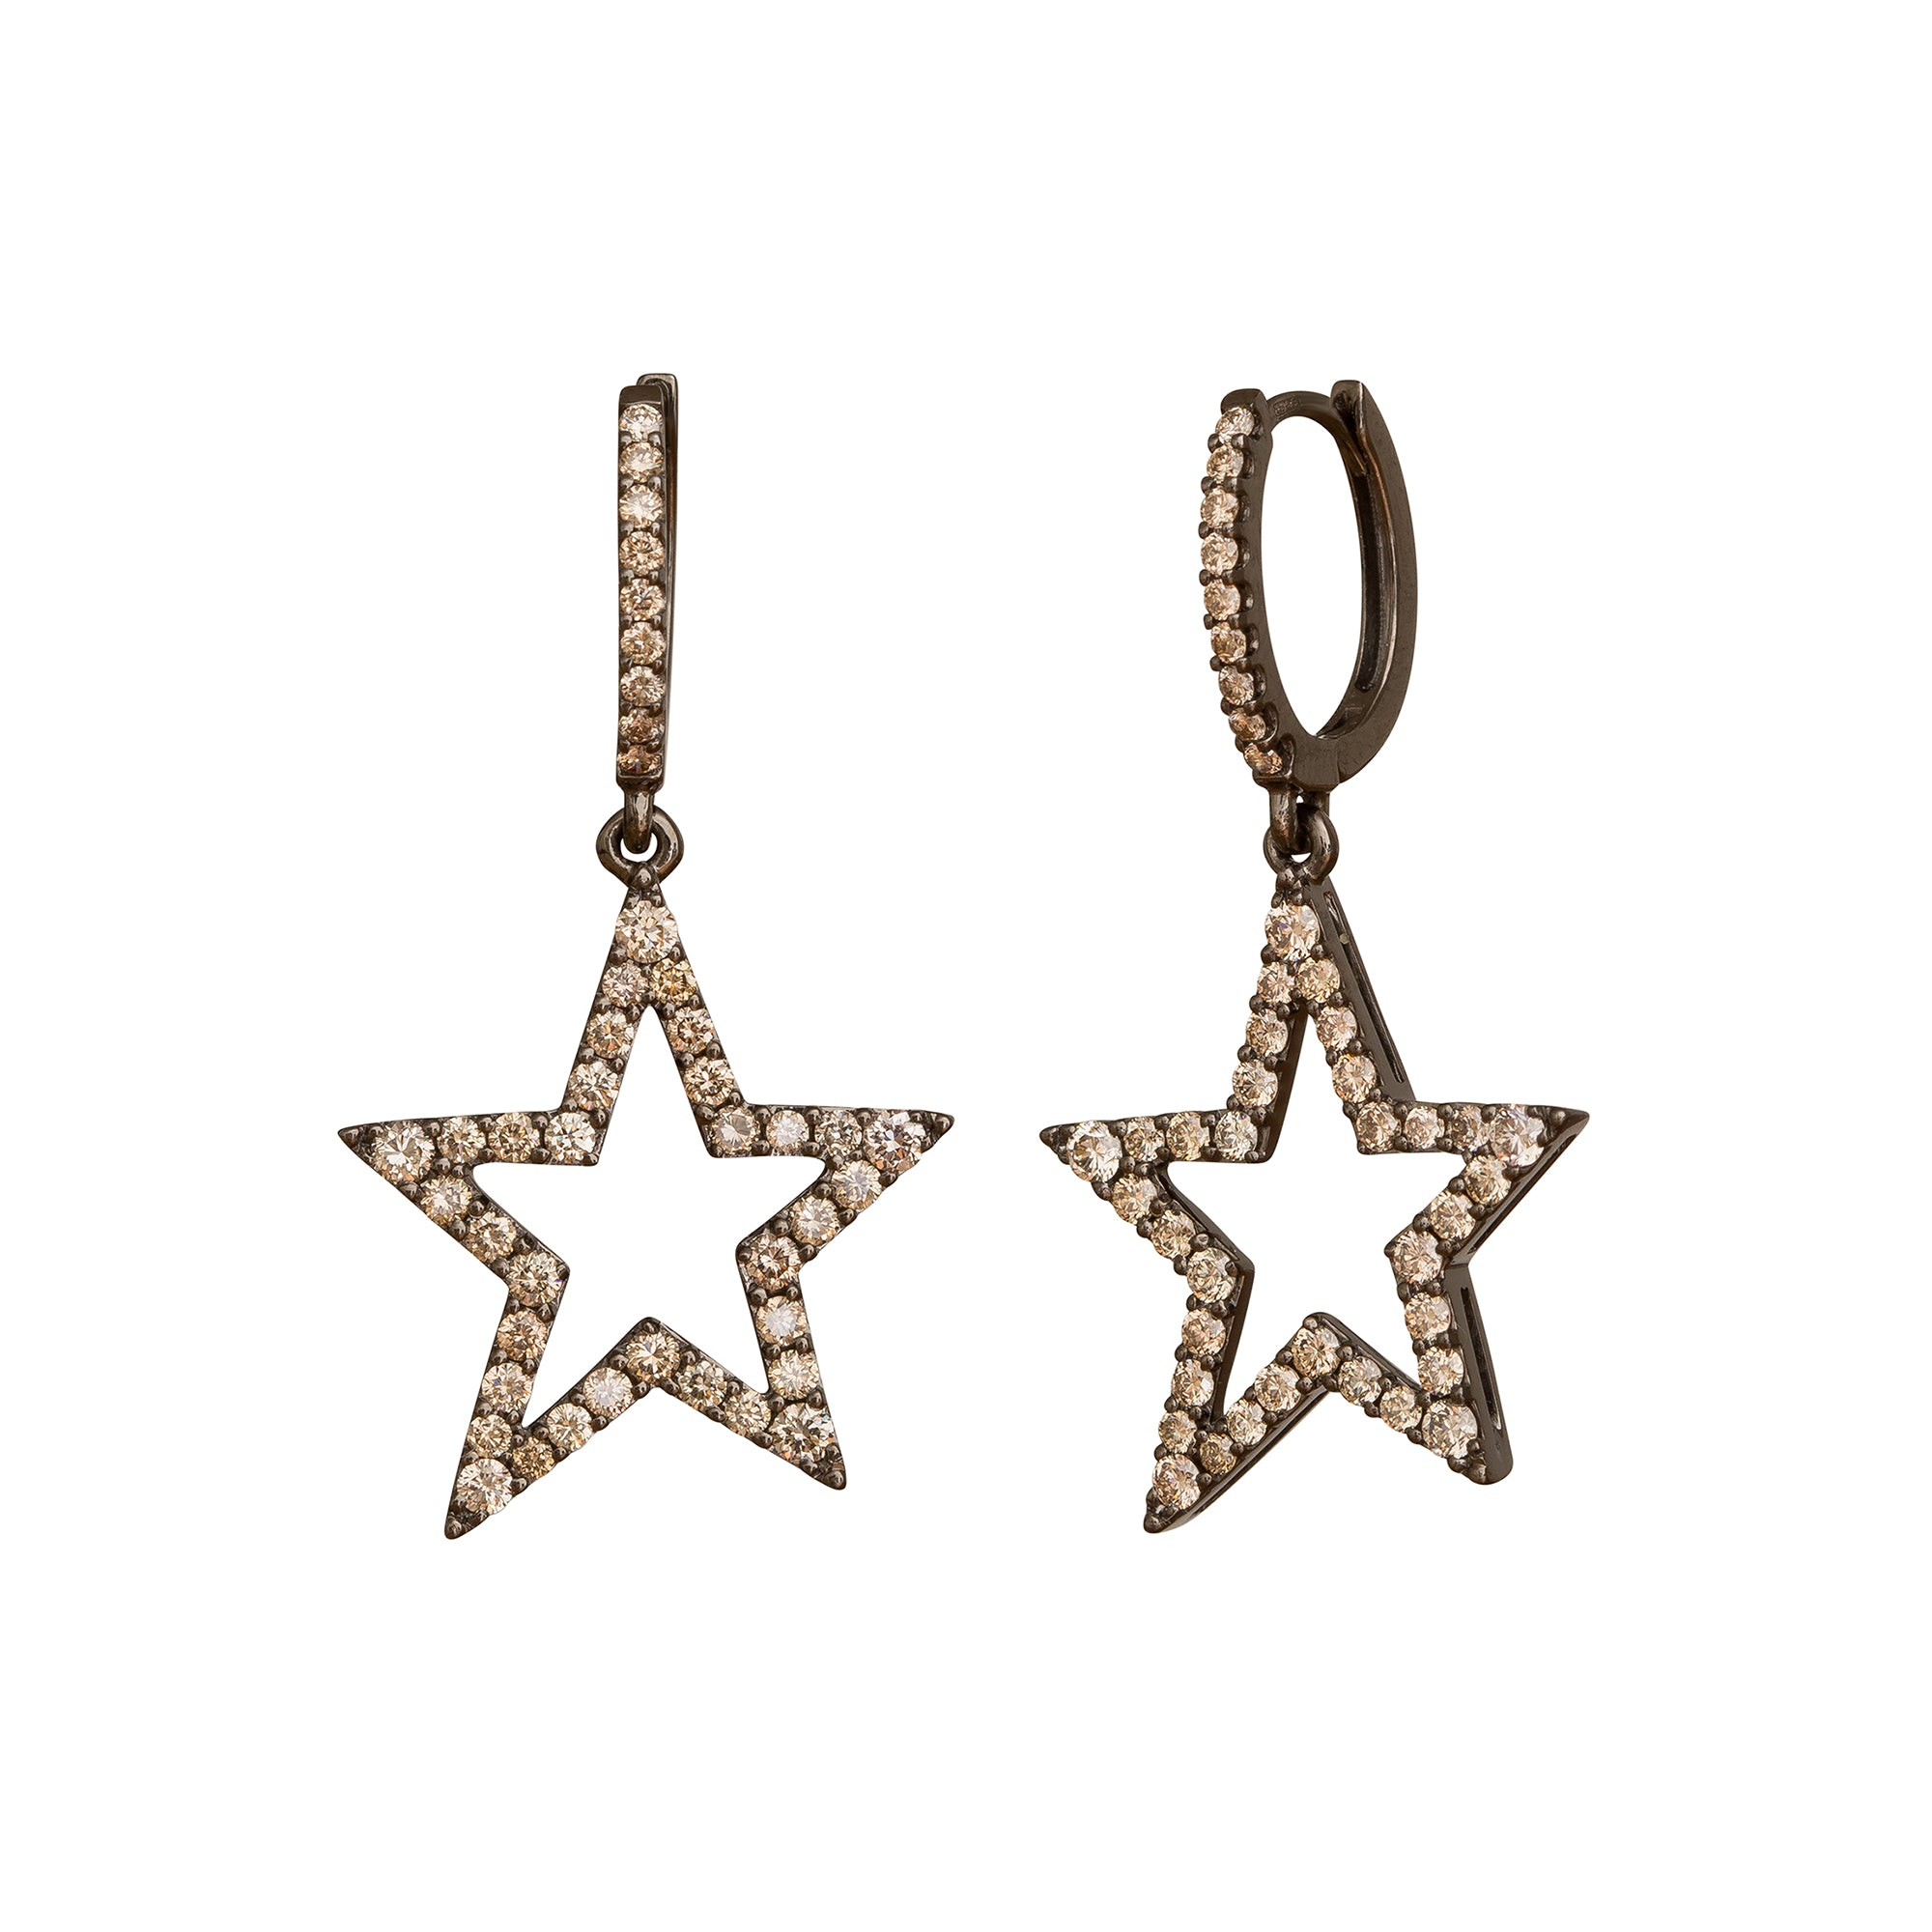 Star Earrings by Rosa de la Cruz for Broken English Jewelry